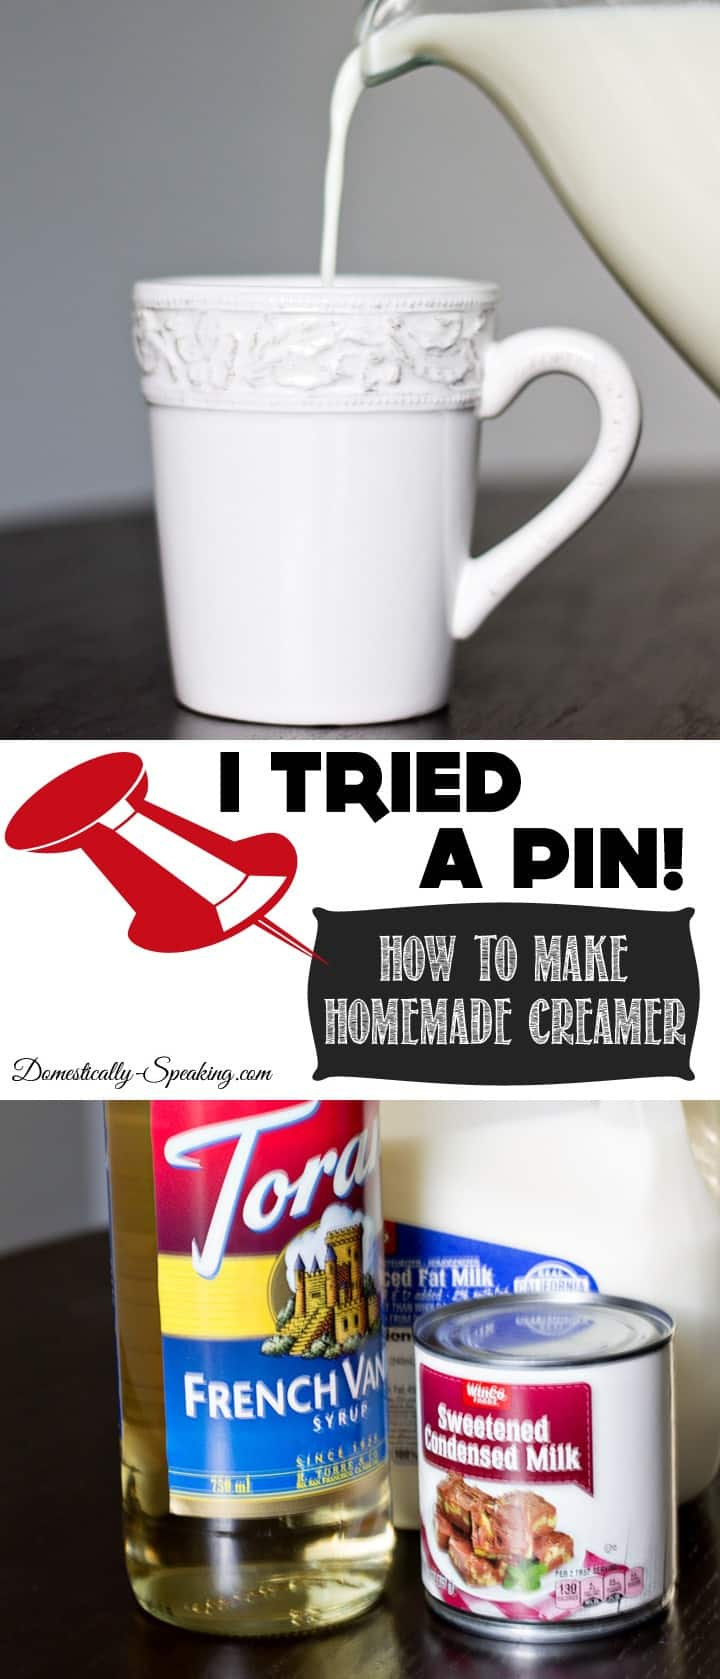 I Tried A Pin Making Homemade Creamer